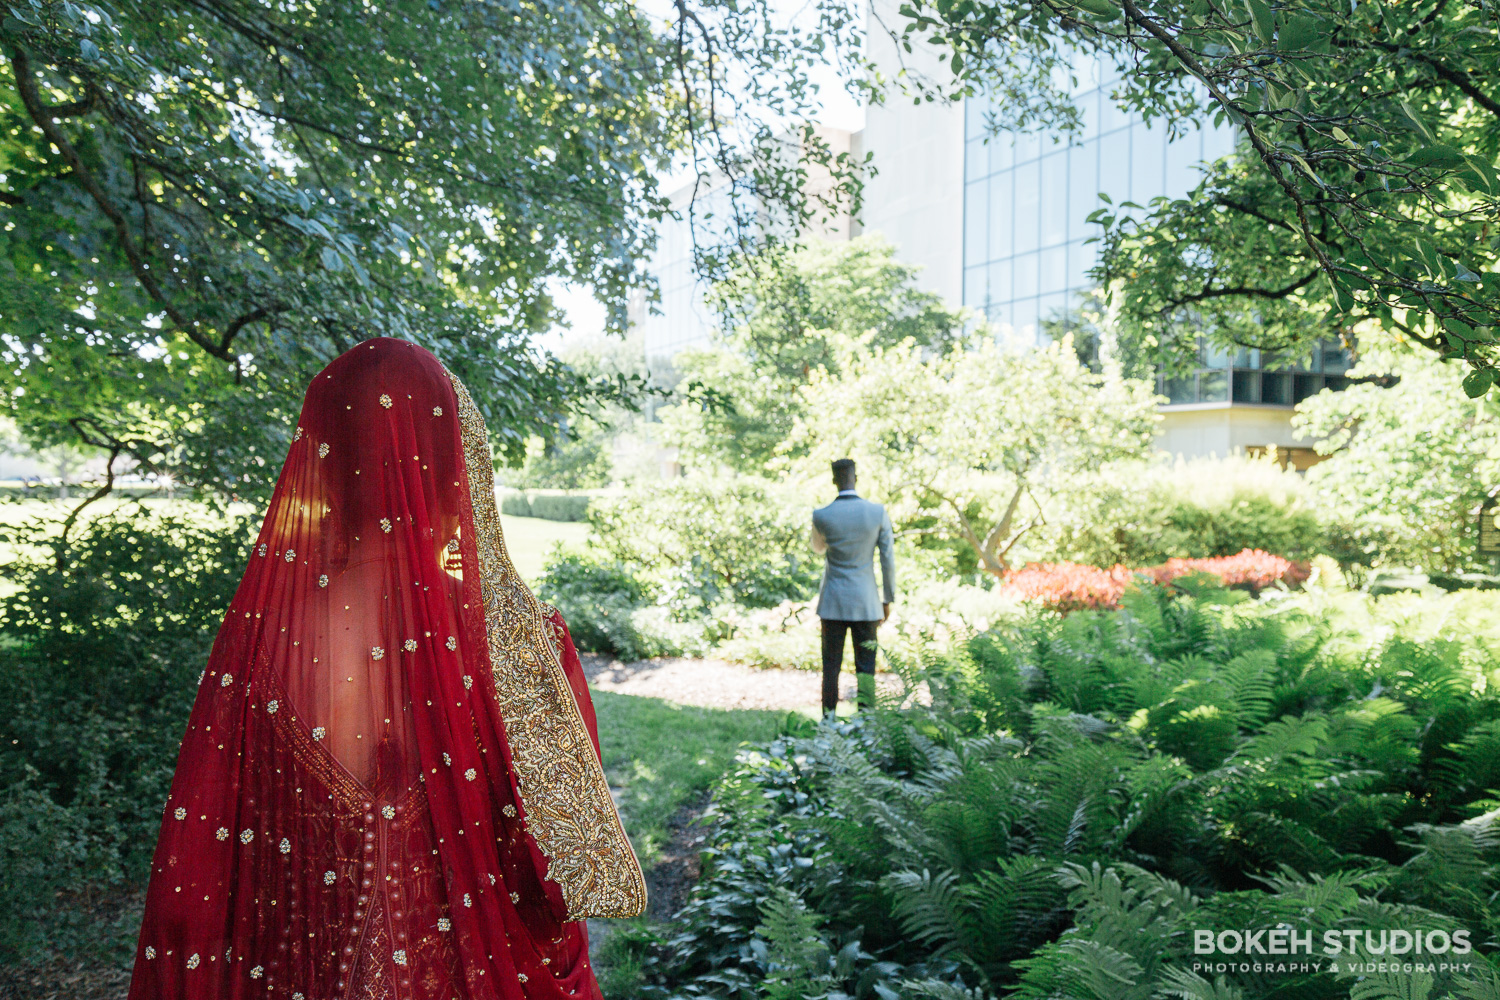 Bokeh-Studios_Muslim-Wedding_Shakespeare-Garden-Evanston-Chicago-Wedding_06